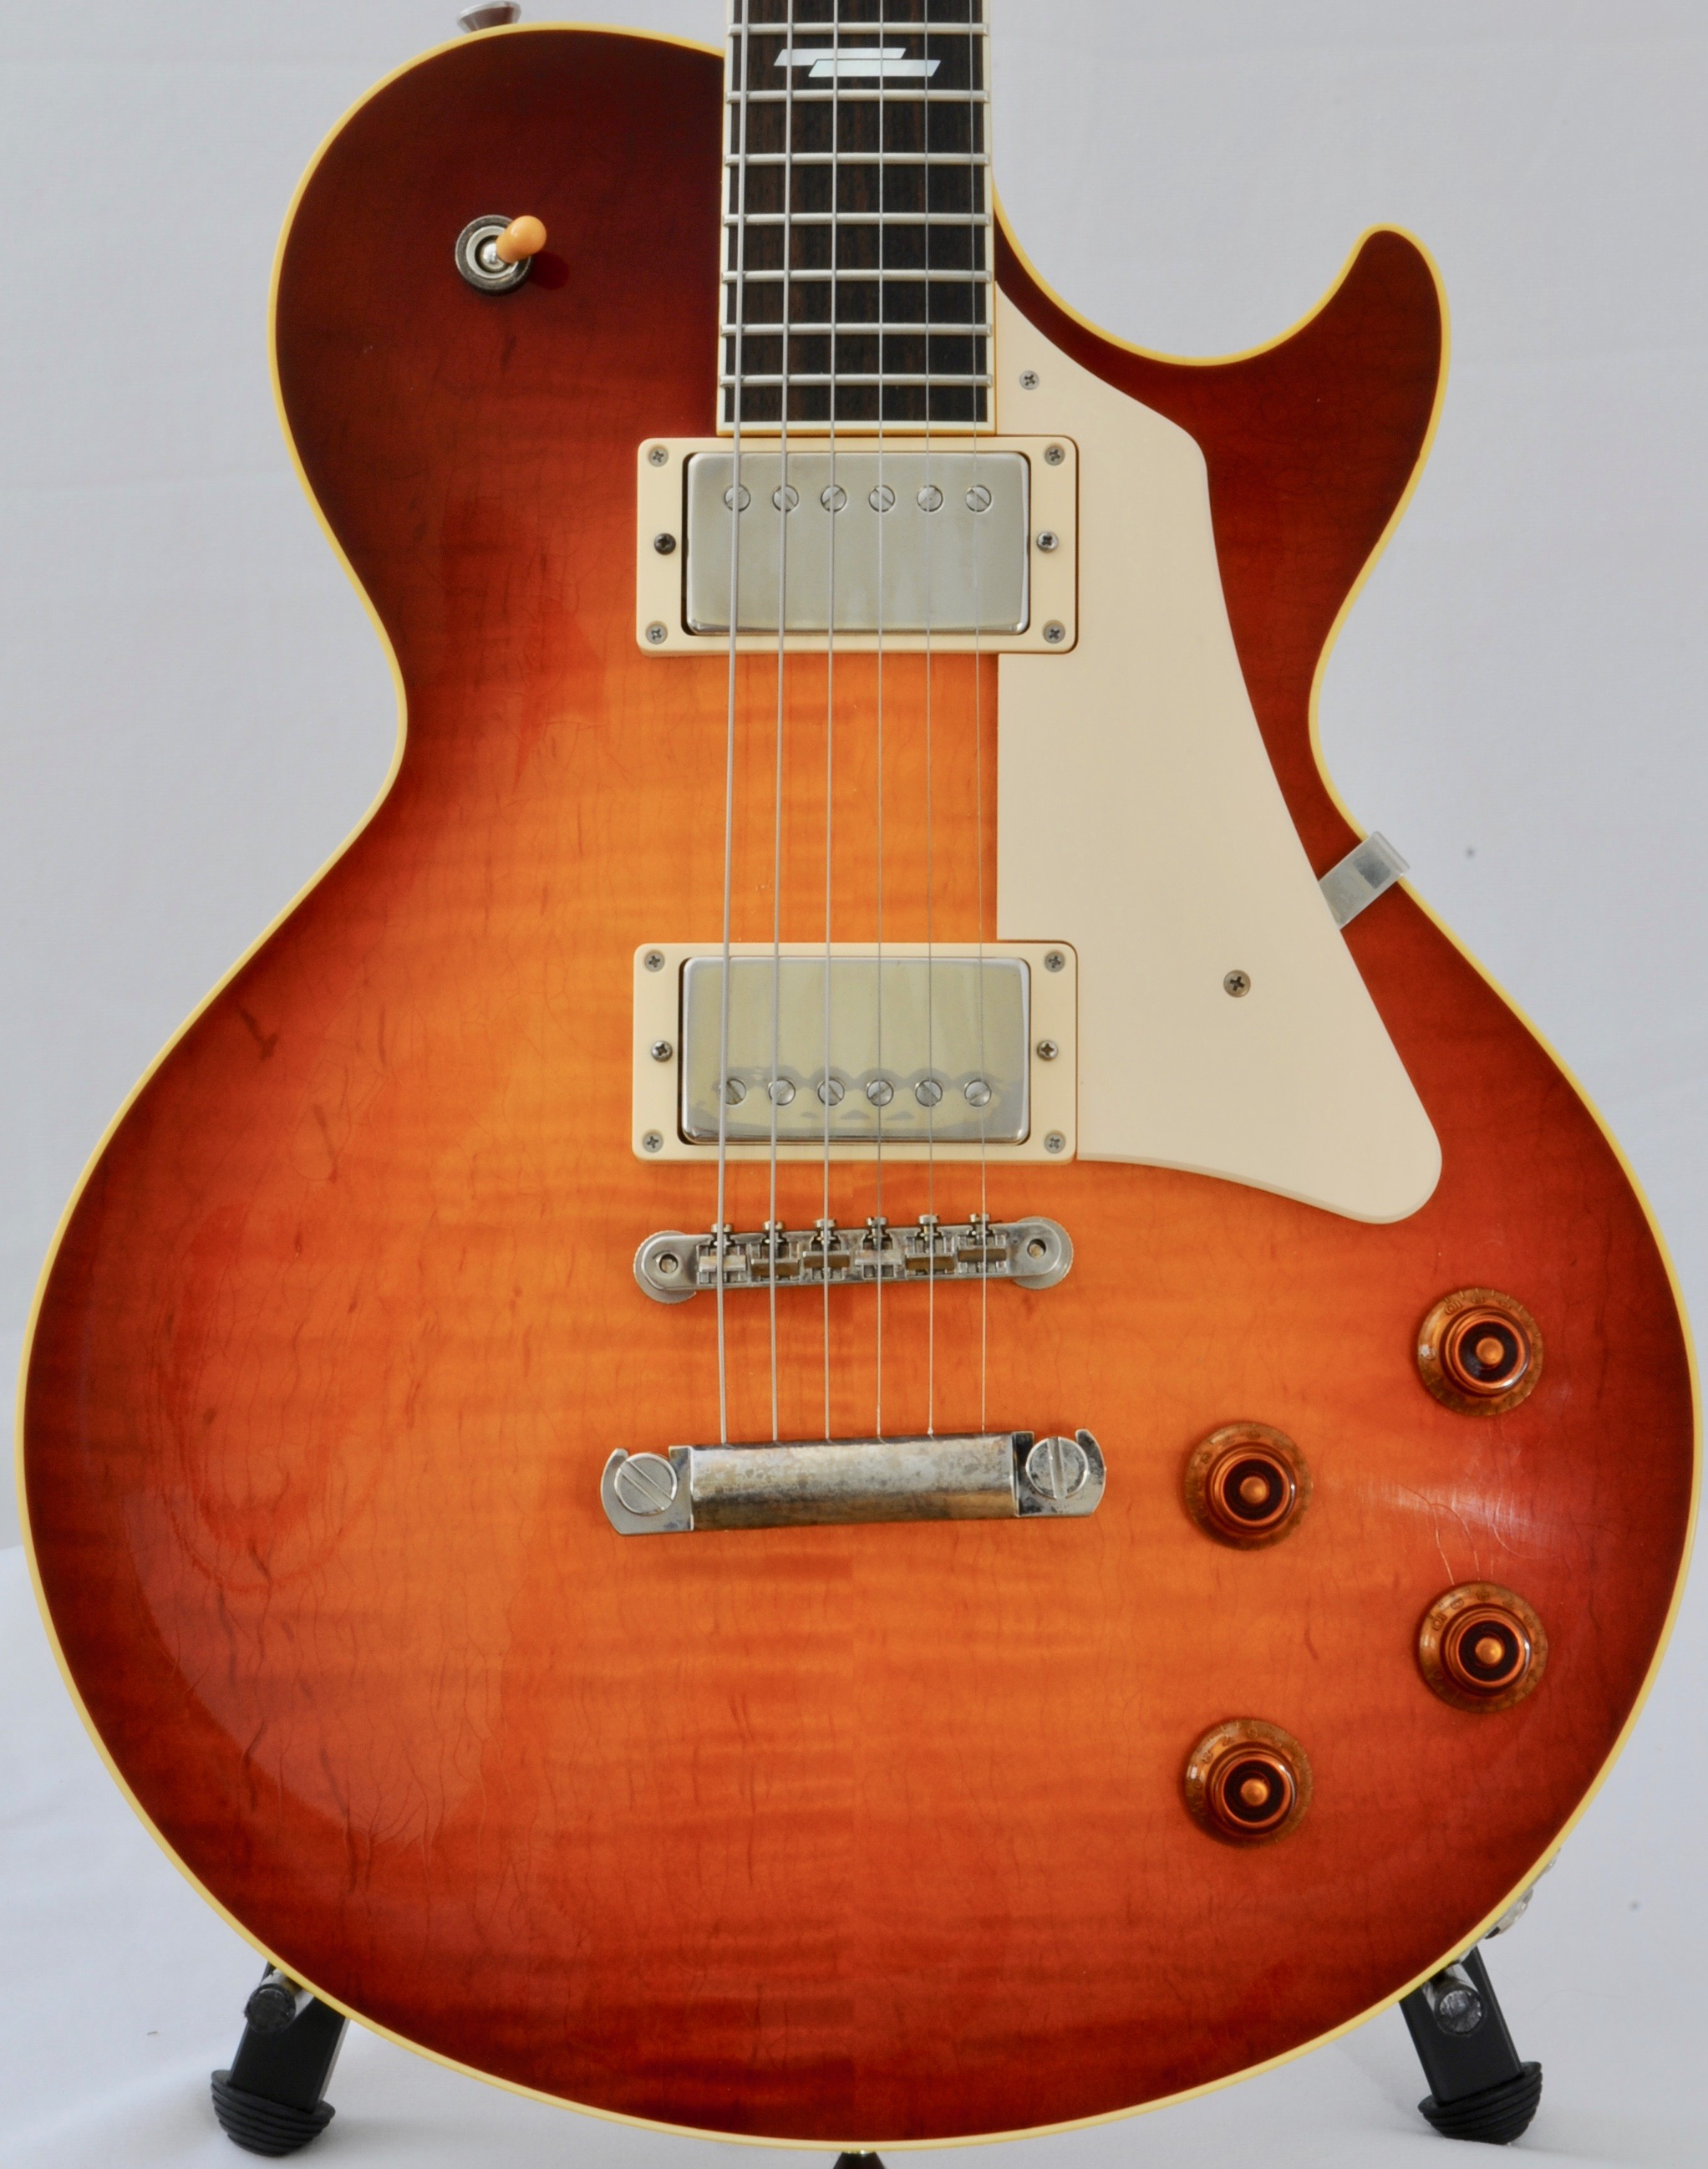 2017 Collings CL with Deluxe Features: Throbak / Inlay / Aging